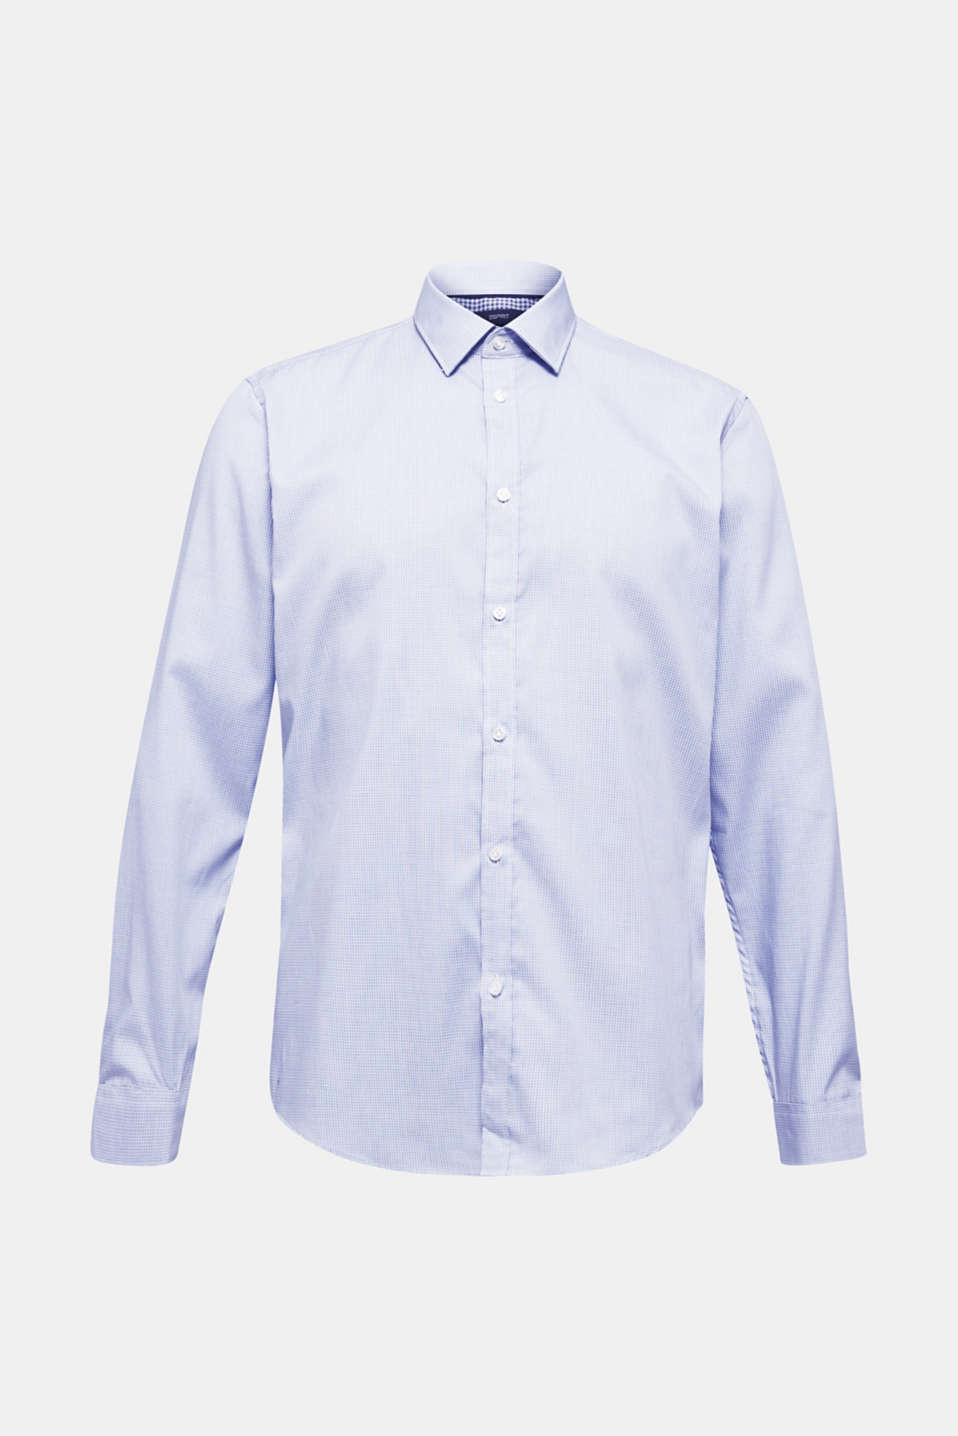 Shirts woven Slim fit, LIGHT BLUE 3, detail image number 6